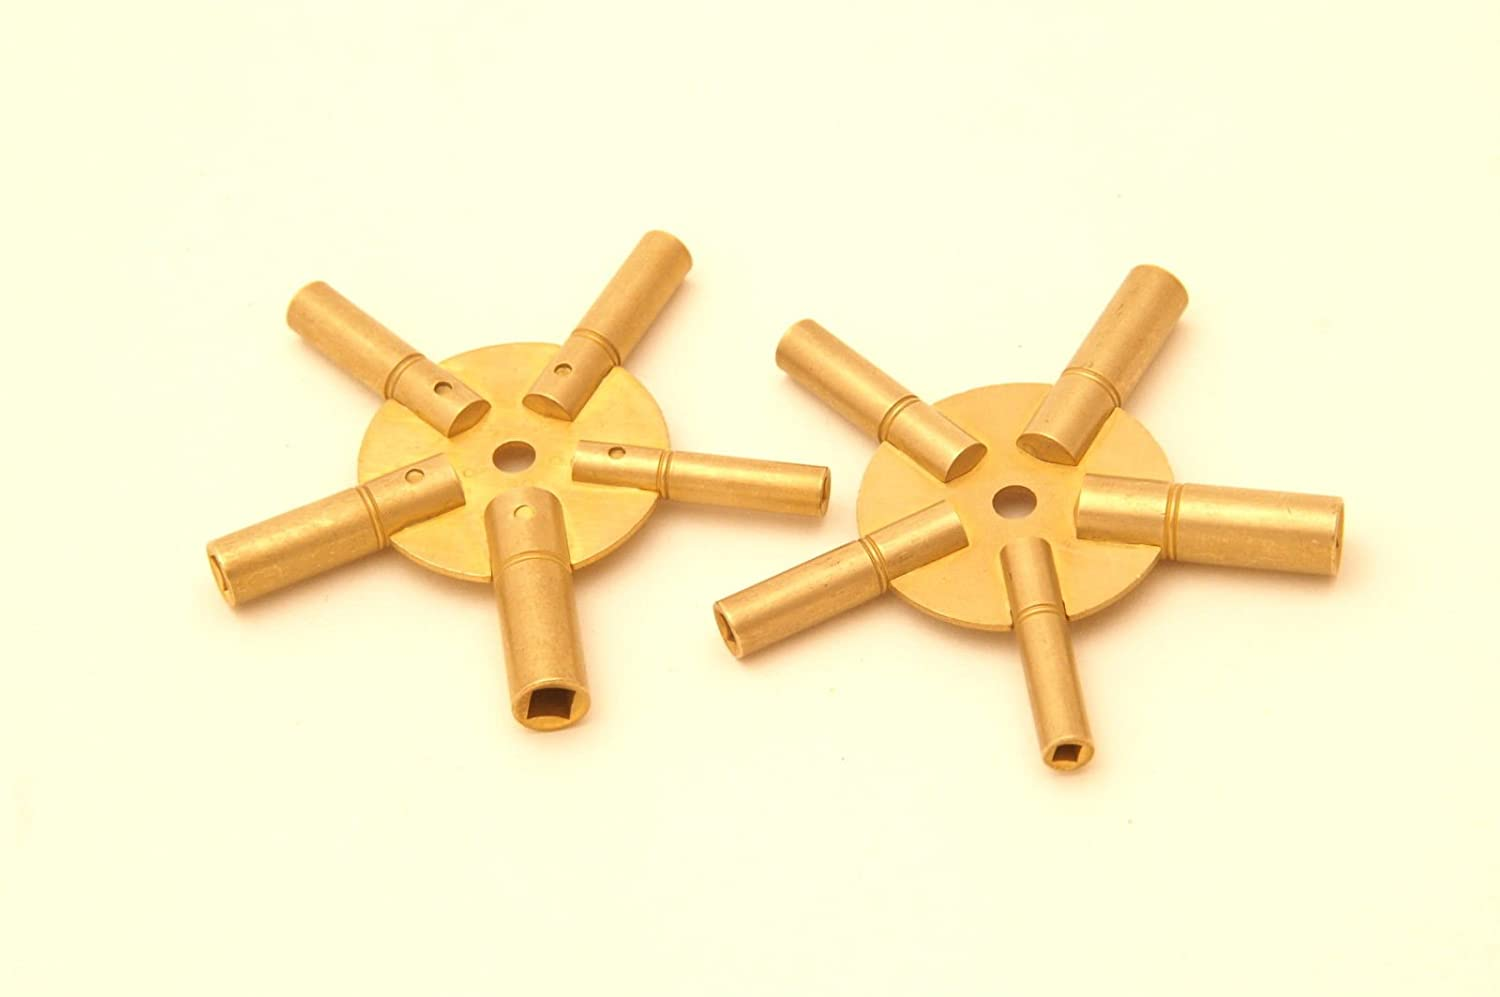 Jewellers Tools Set Of 2 Clock Winding Keys - All Sizes Brass Spider Star Pair - Odd And Even AL Findings Ltd